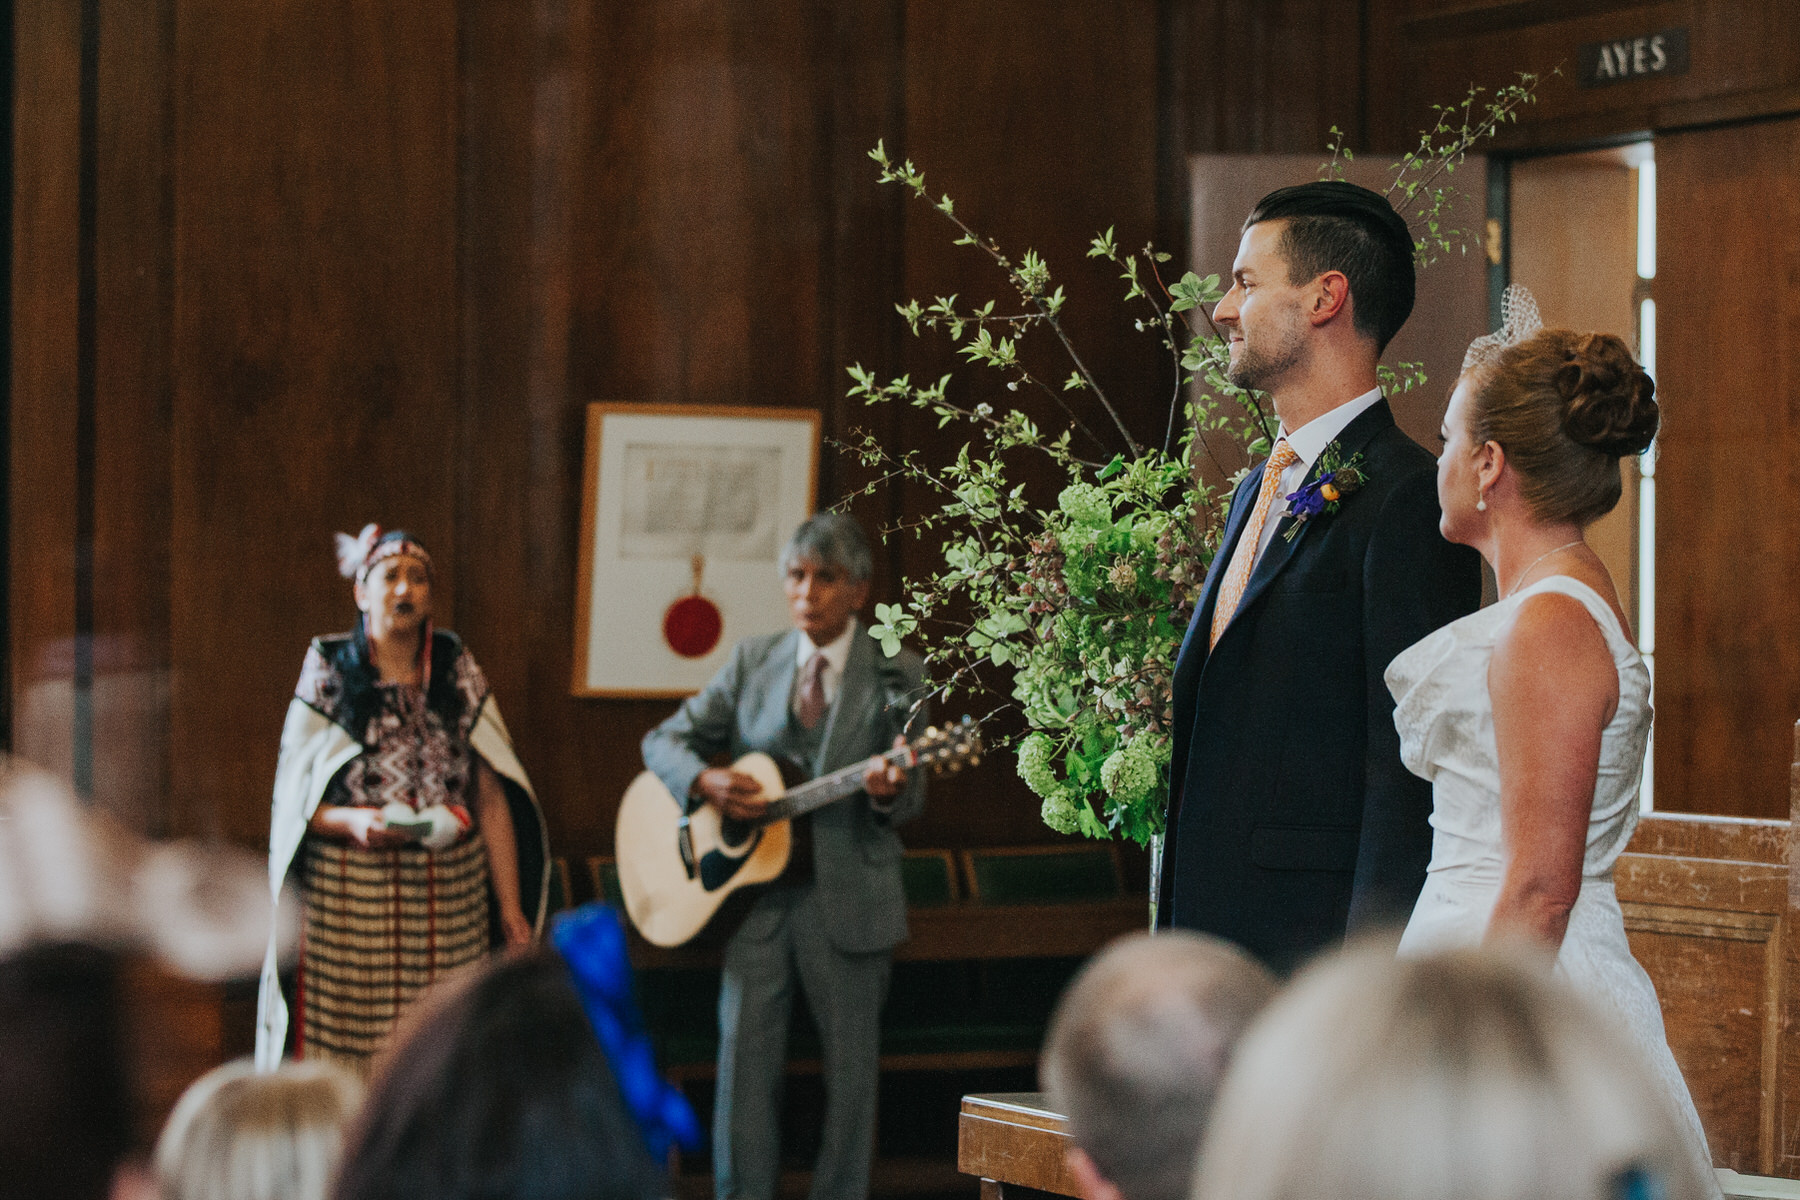 MS-Londesborough-Pub-wedding-Hackney-alternative-photographer-120-bride-groom-watch-traditional-new-zealand-singers.jpg